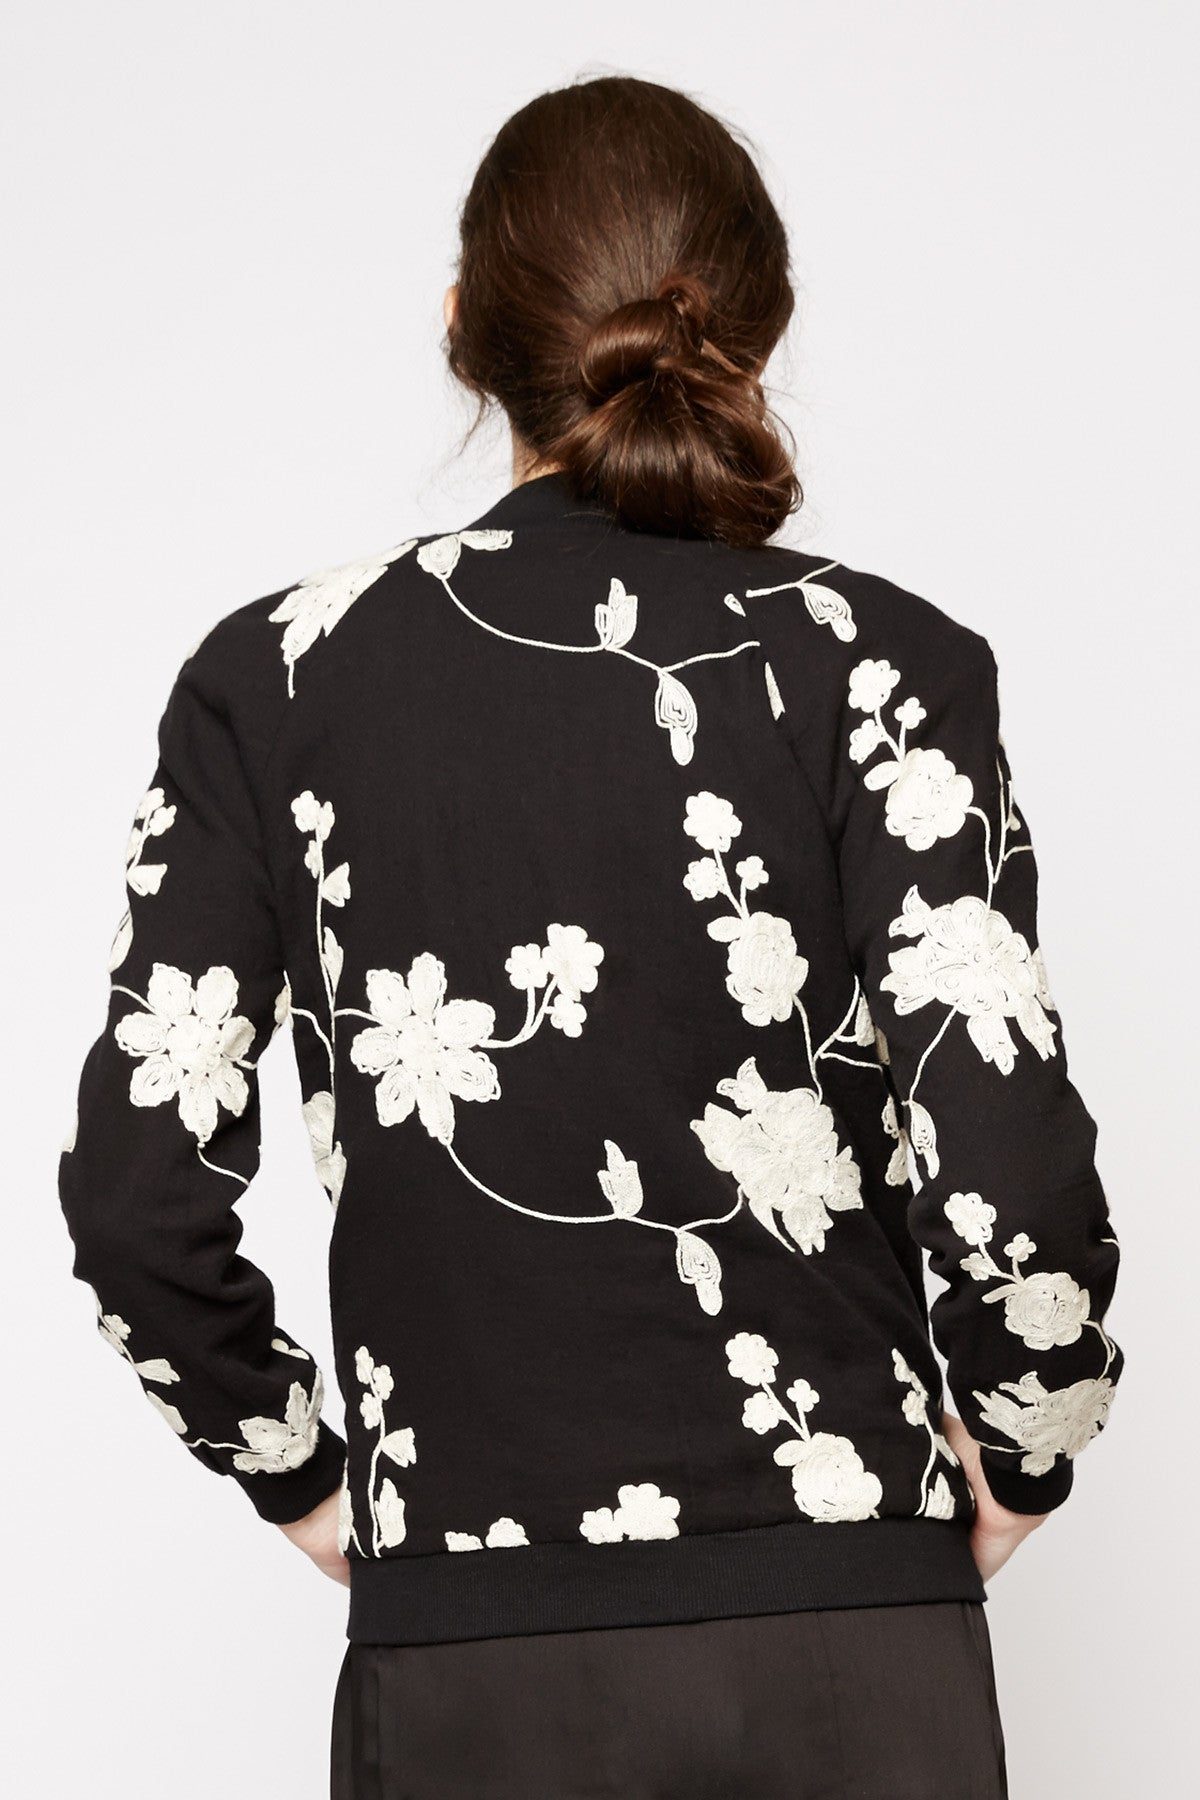 Thalassa Floral Bomber Jacket by Tulle